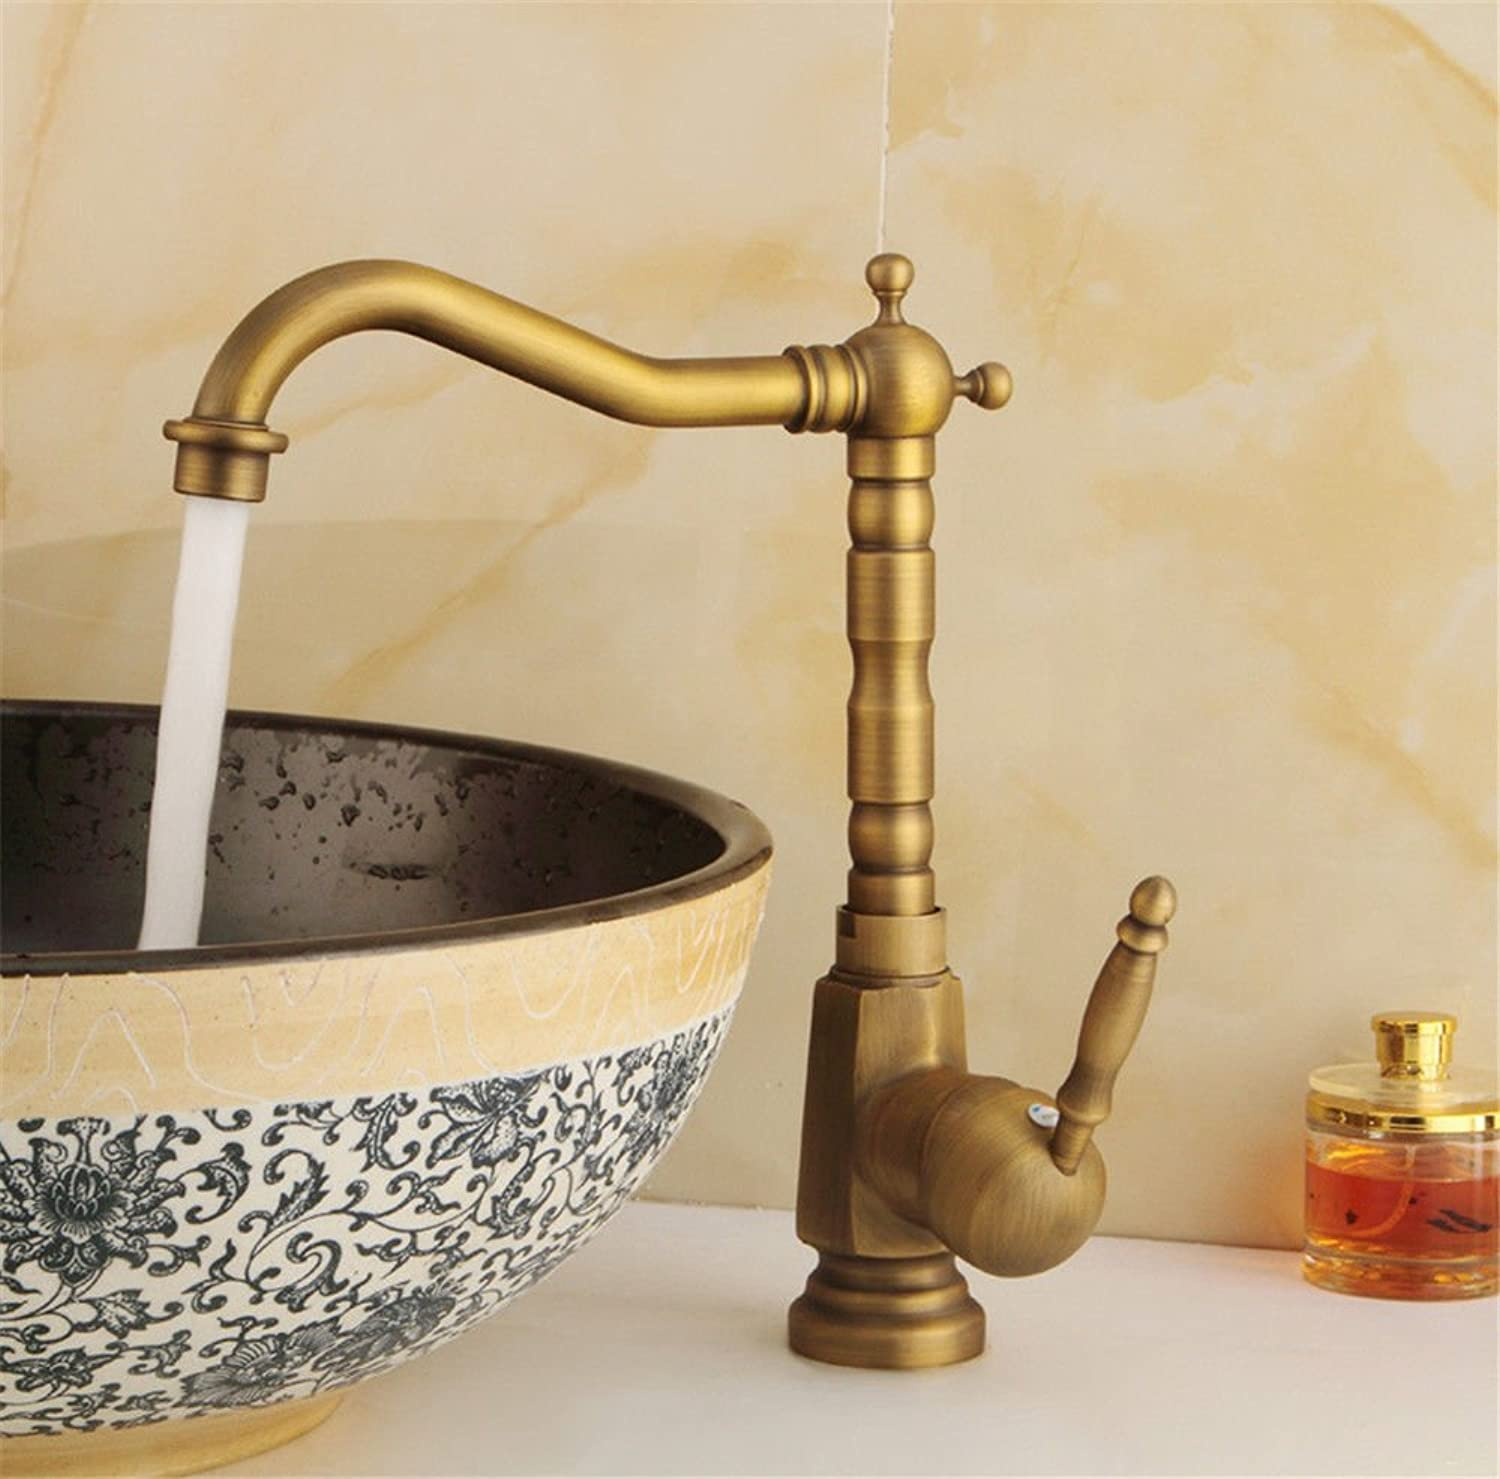 Gyps Faucet Basin Mixer Tap Waterfall Faucet Antique Bathroom ?Antique kitchen faucet hot and cold water basin mixer basin mixer single hole single lever to redate the single-Tap B